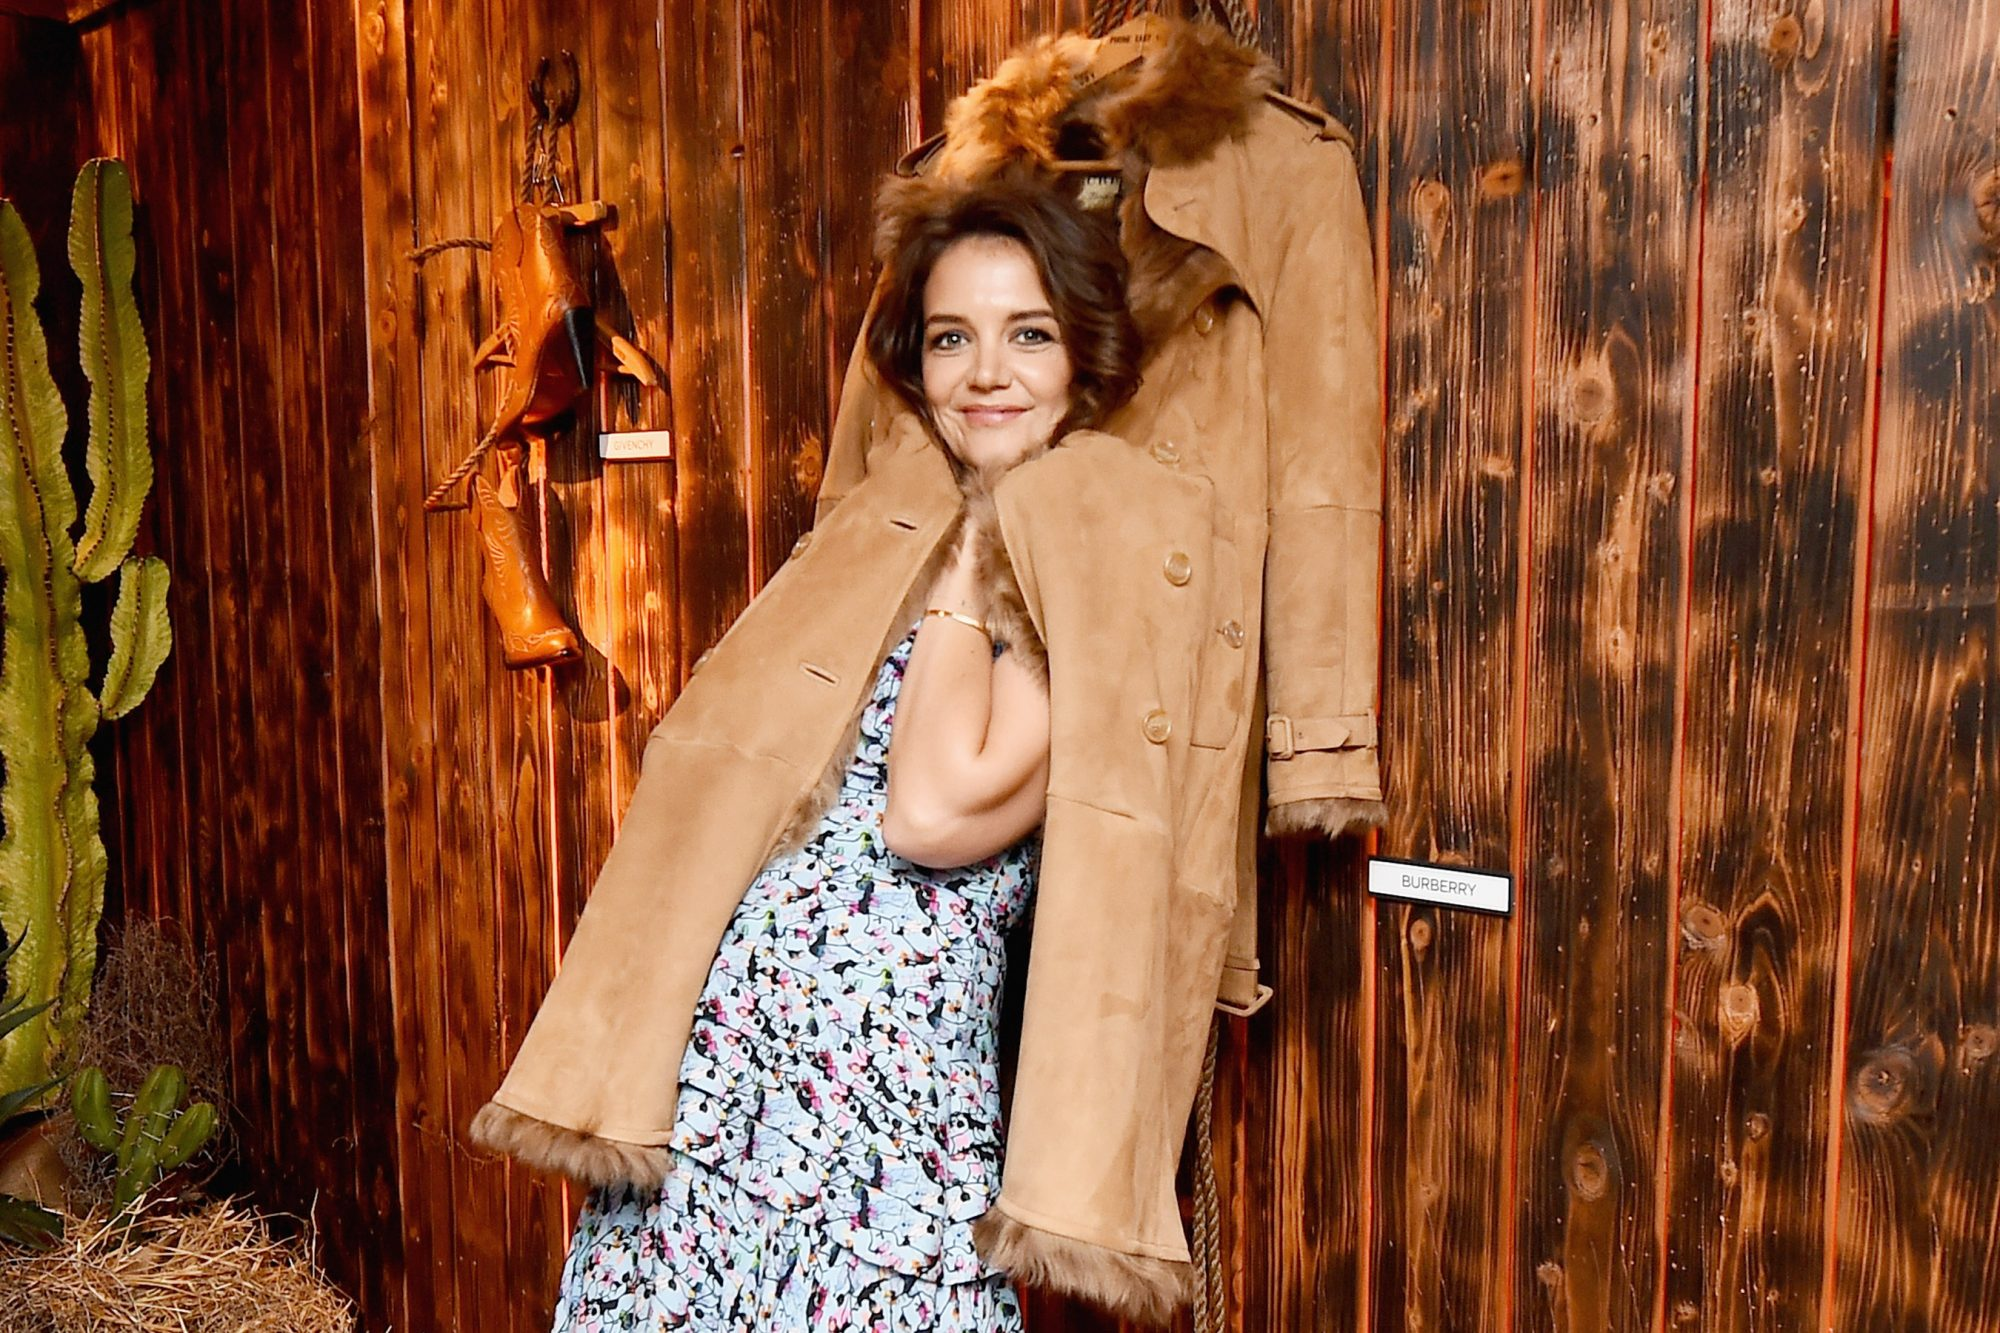 Glenda Bailey And Katie Holmes Host The Launch Of The Saks IT List Townhouse In Partnership With American Express And Harper's BAZAAR